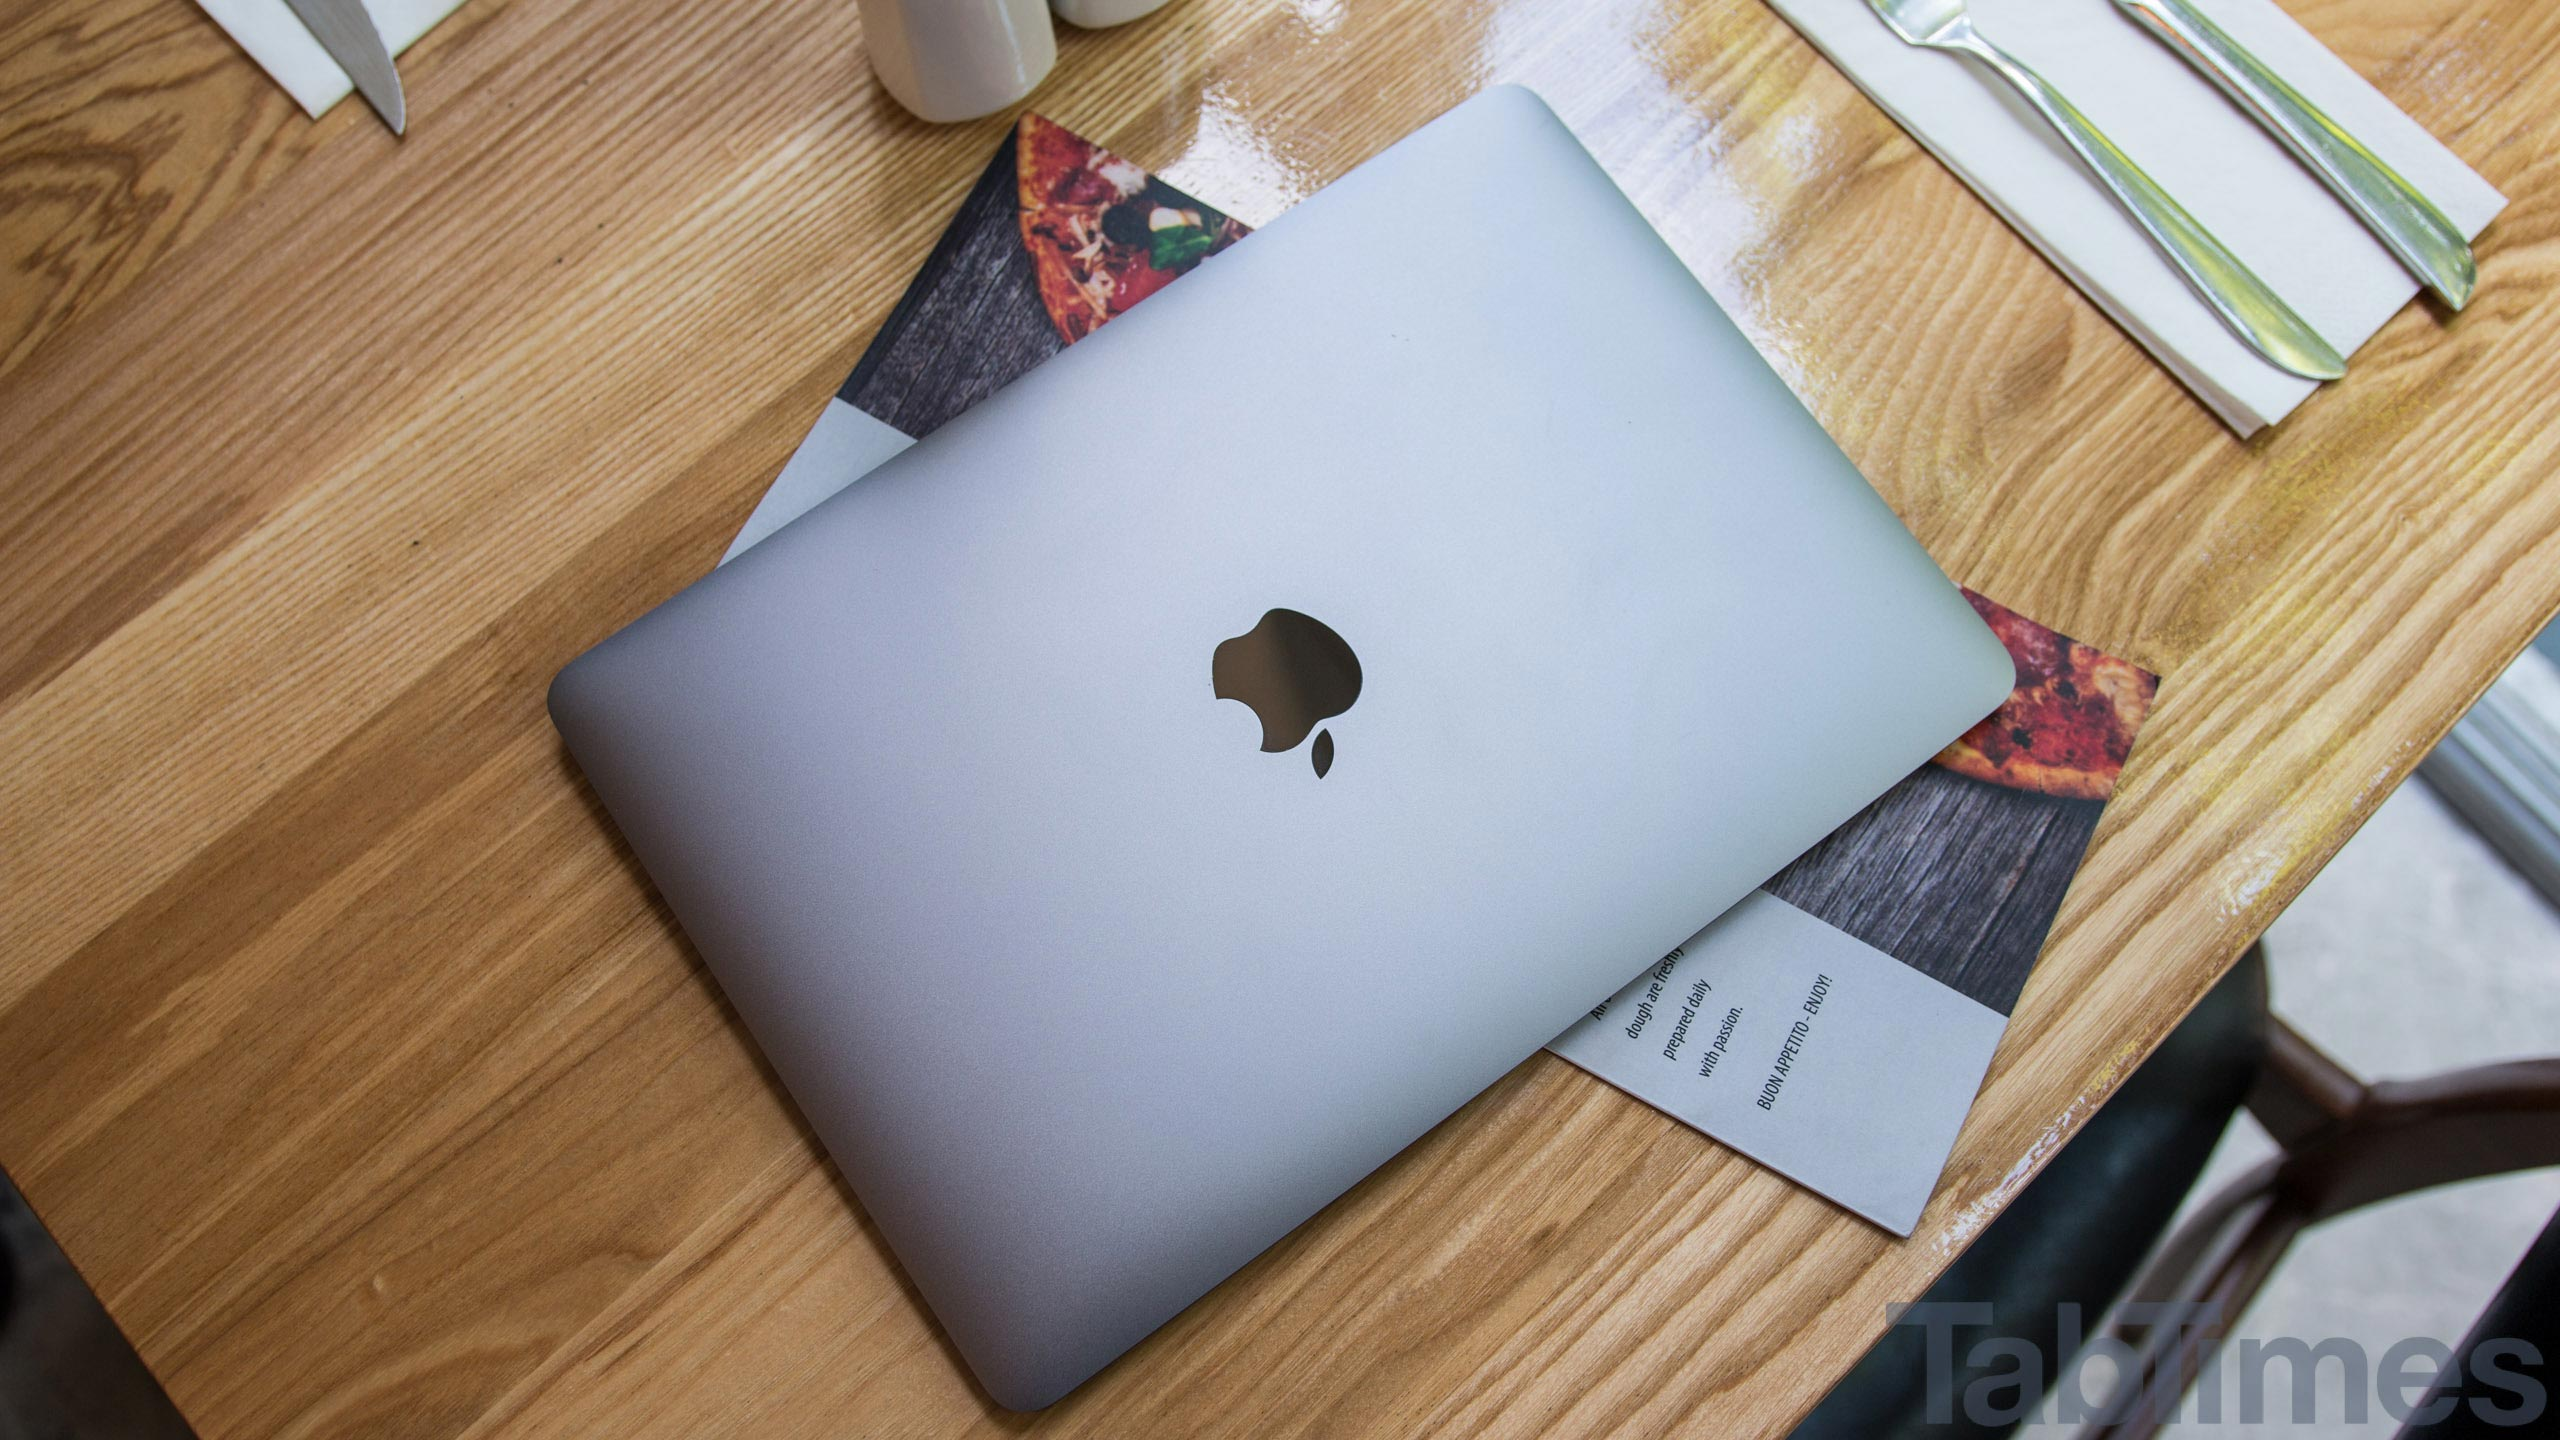 macbook-12-review-TabTimes-8